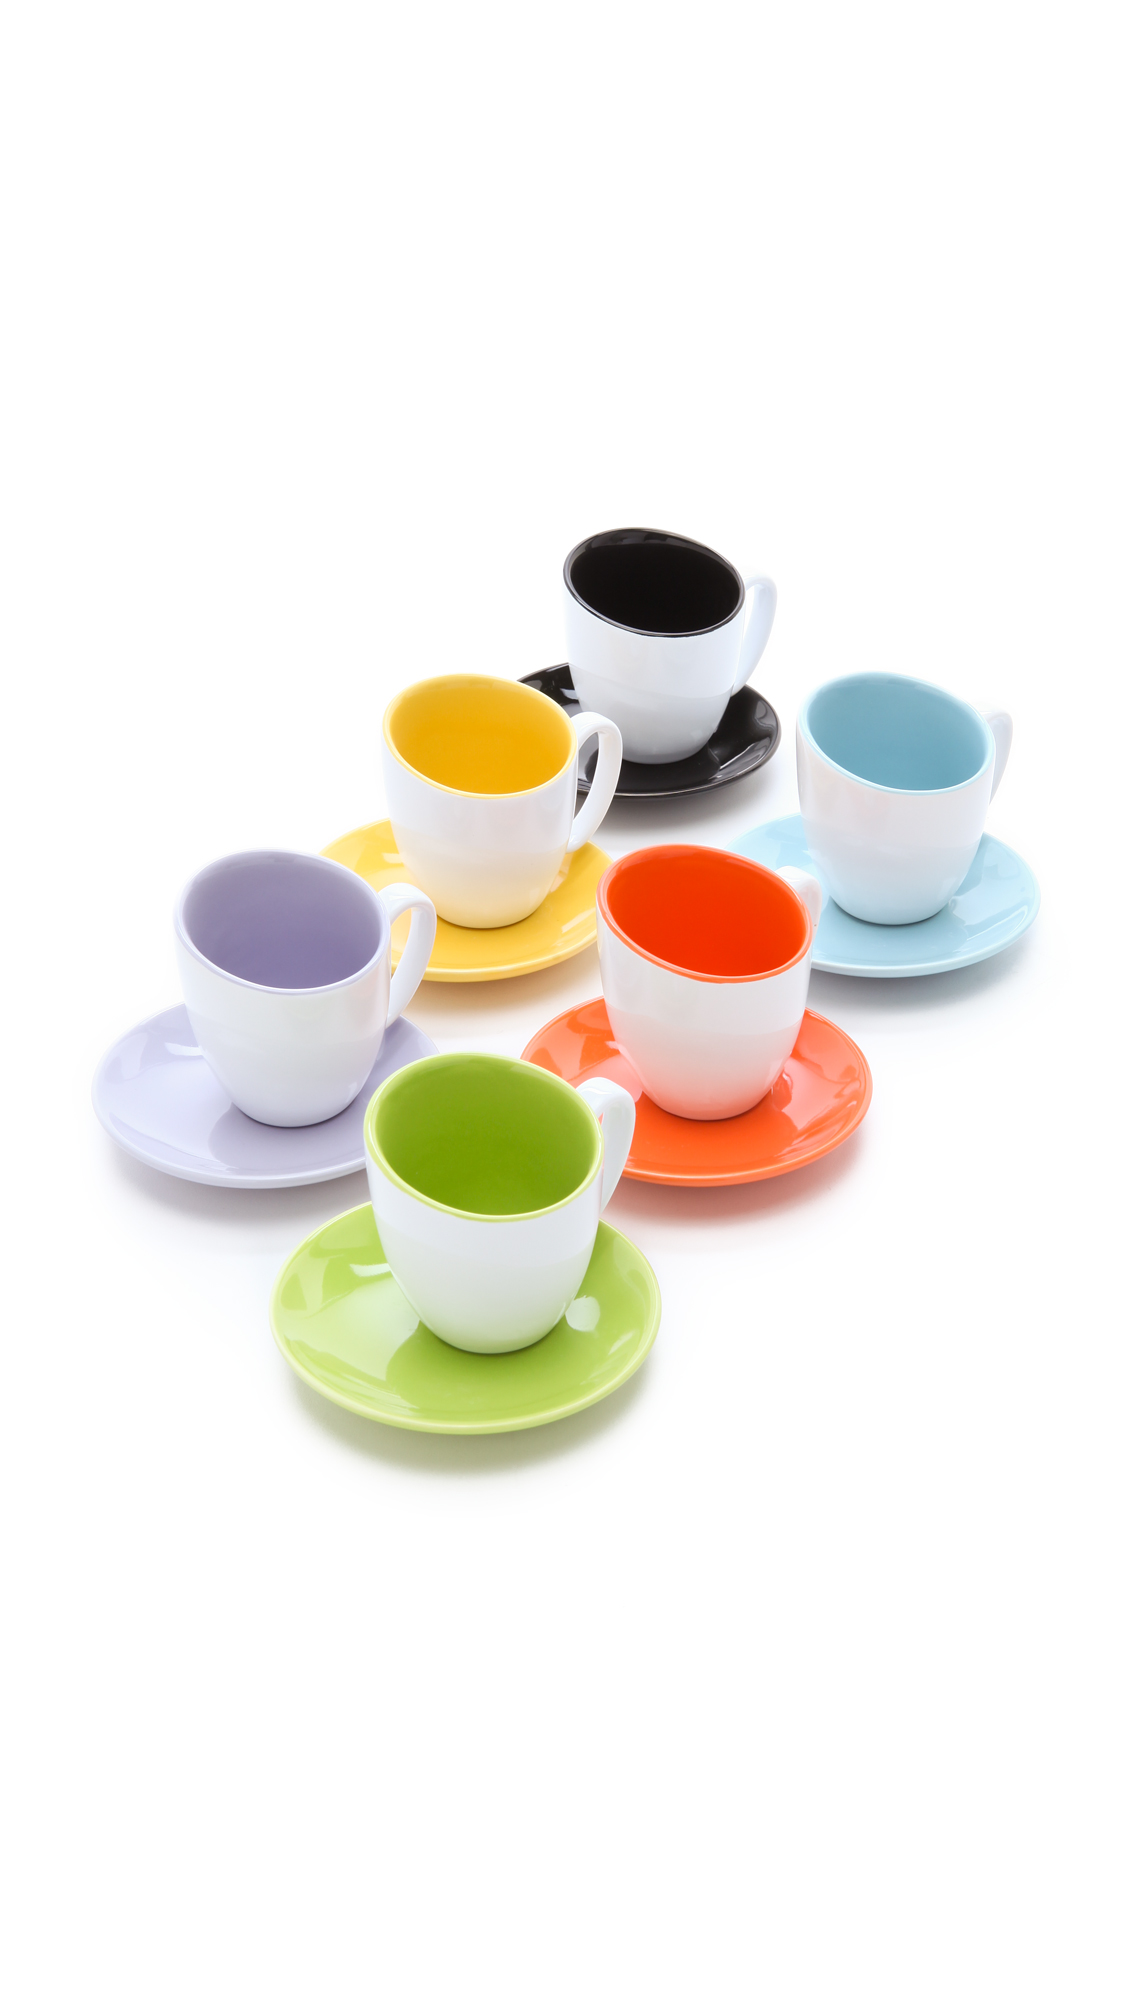 giftbq - gift boutique classic coffee tea glazed espresso cup set shopbop